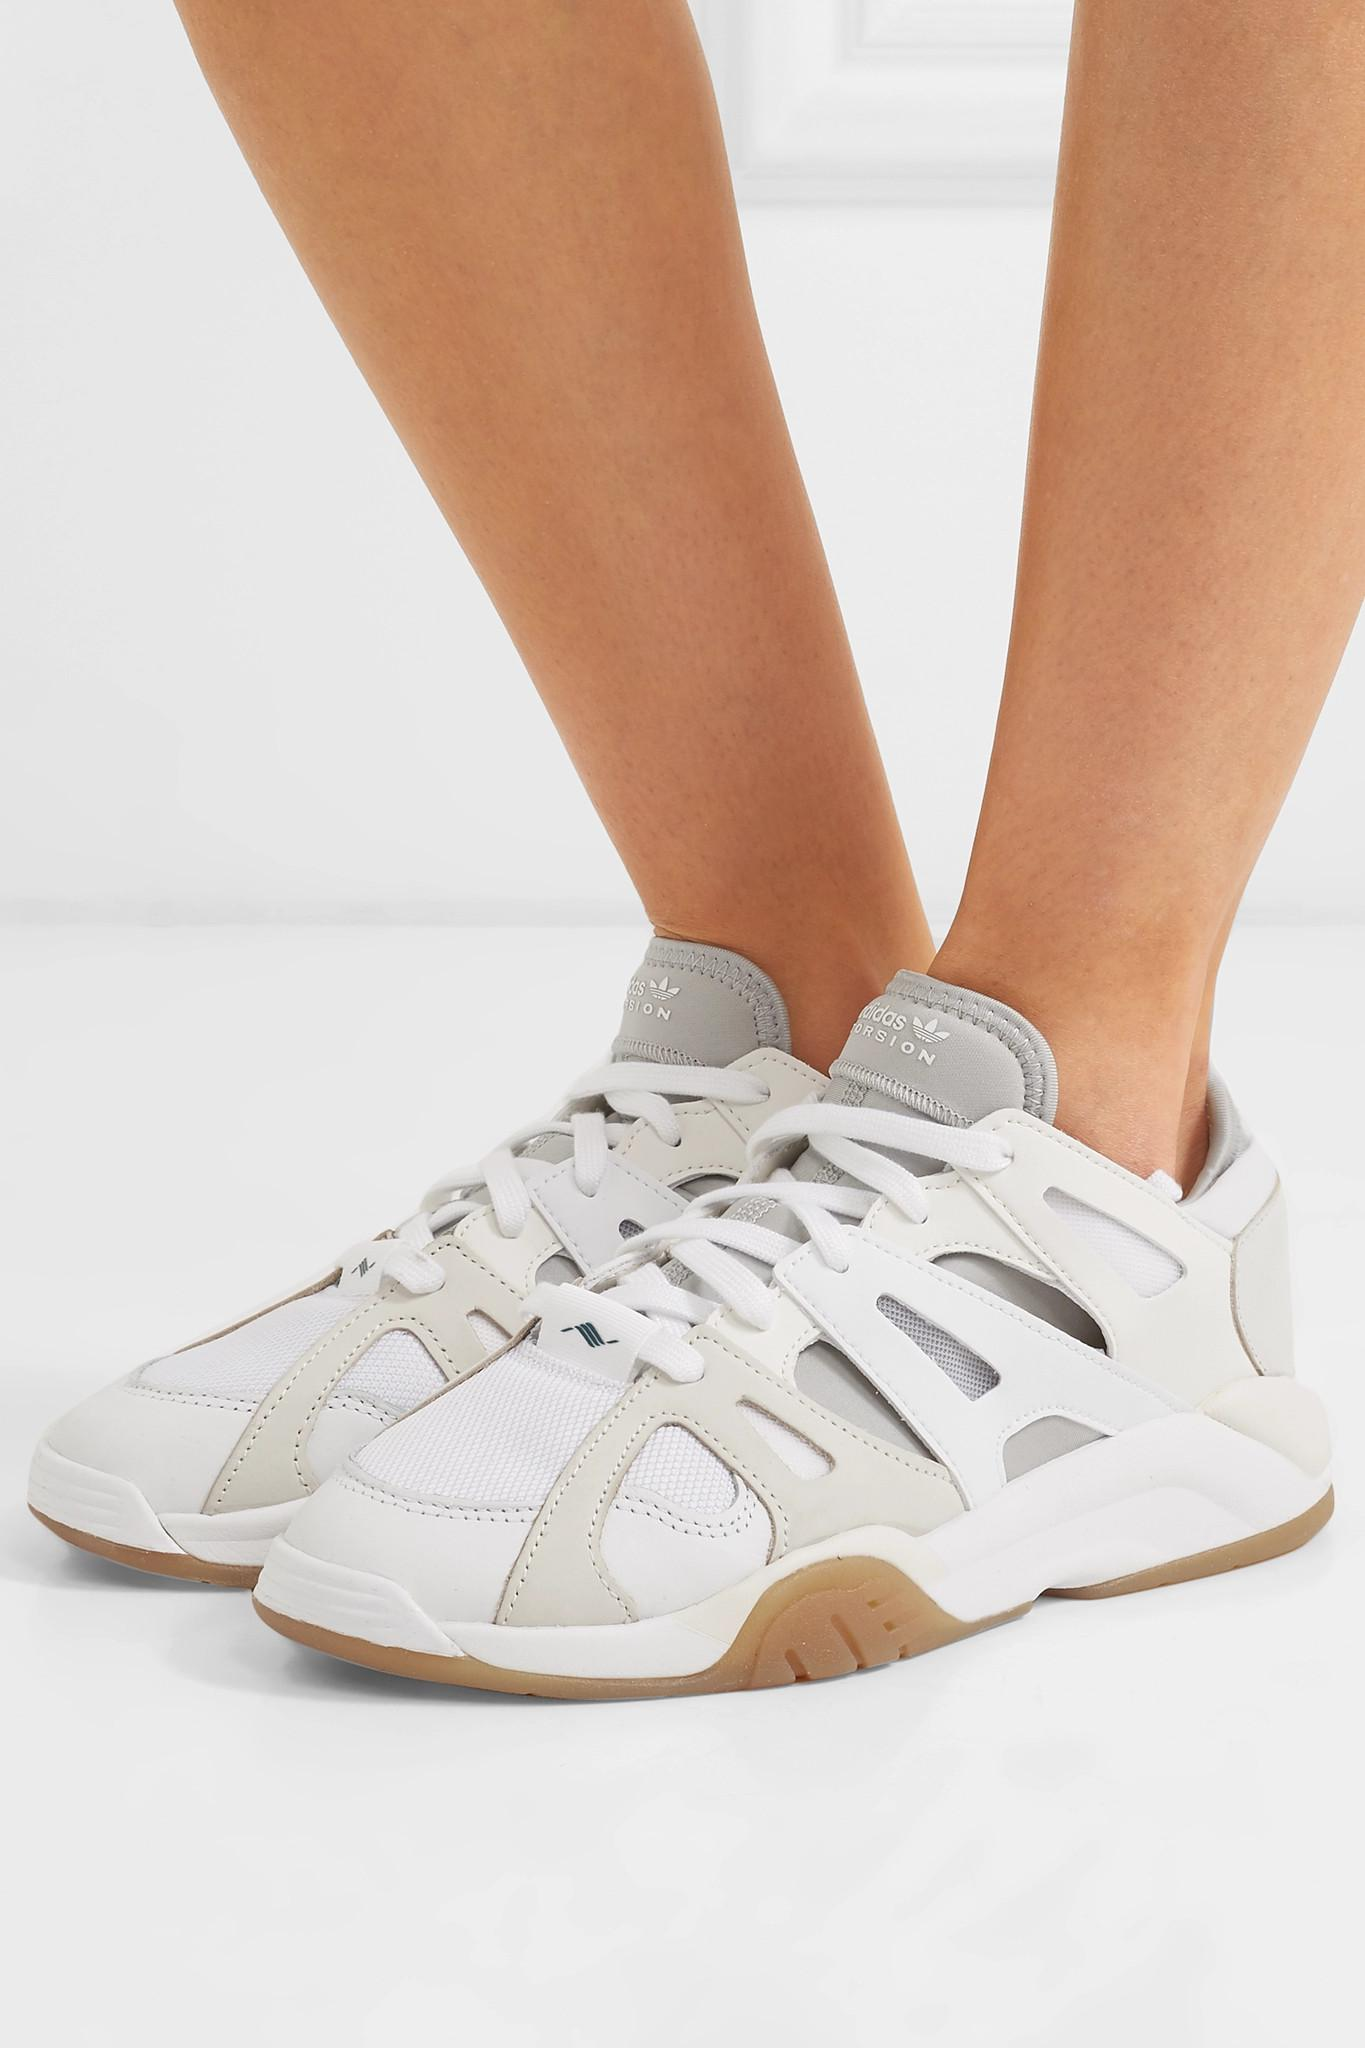 competitive price 621d4 2201d Adidas Originals - White Dimension Low Leather, Neoprene And Mesh Sneakers  - Lyst. View fullscreen